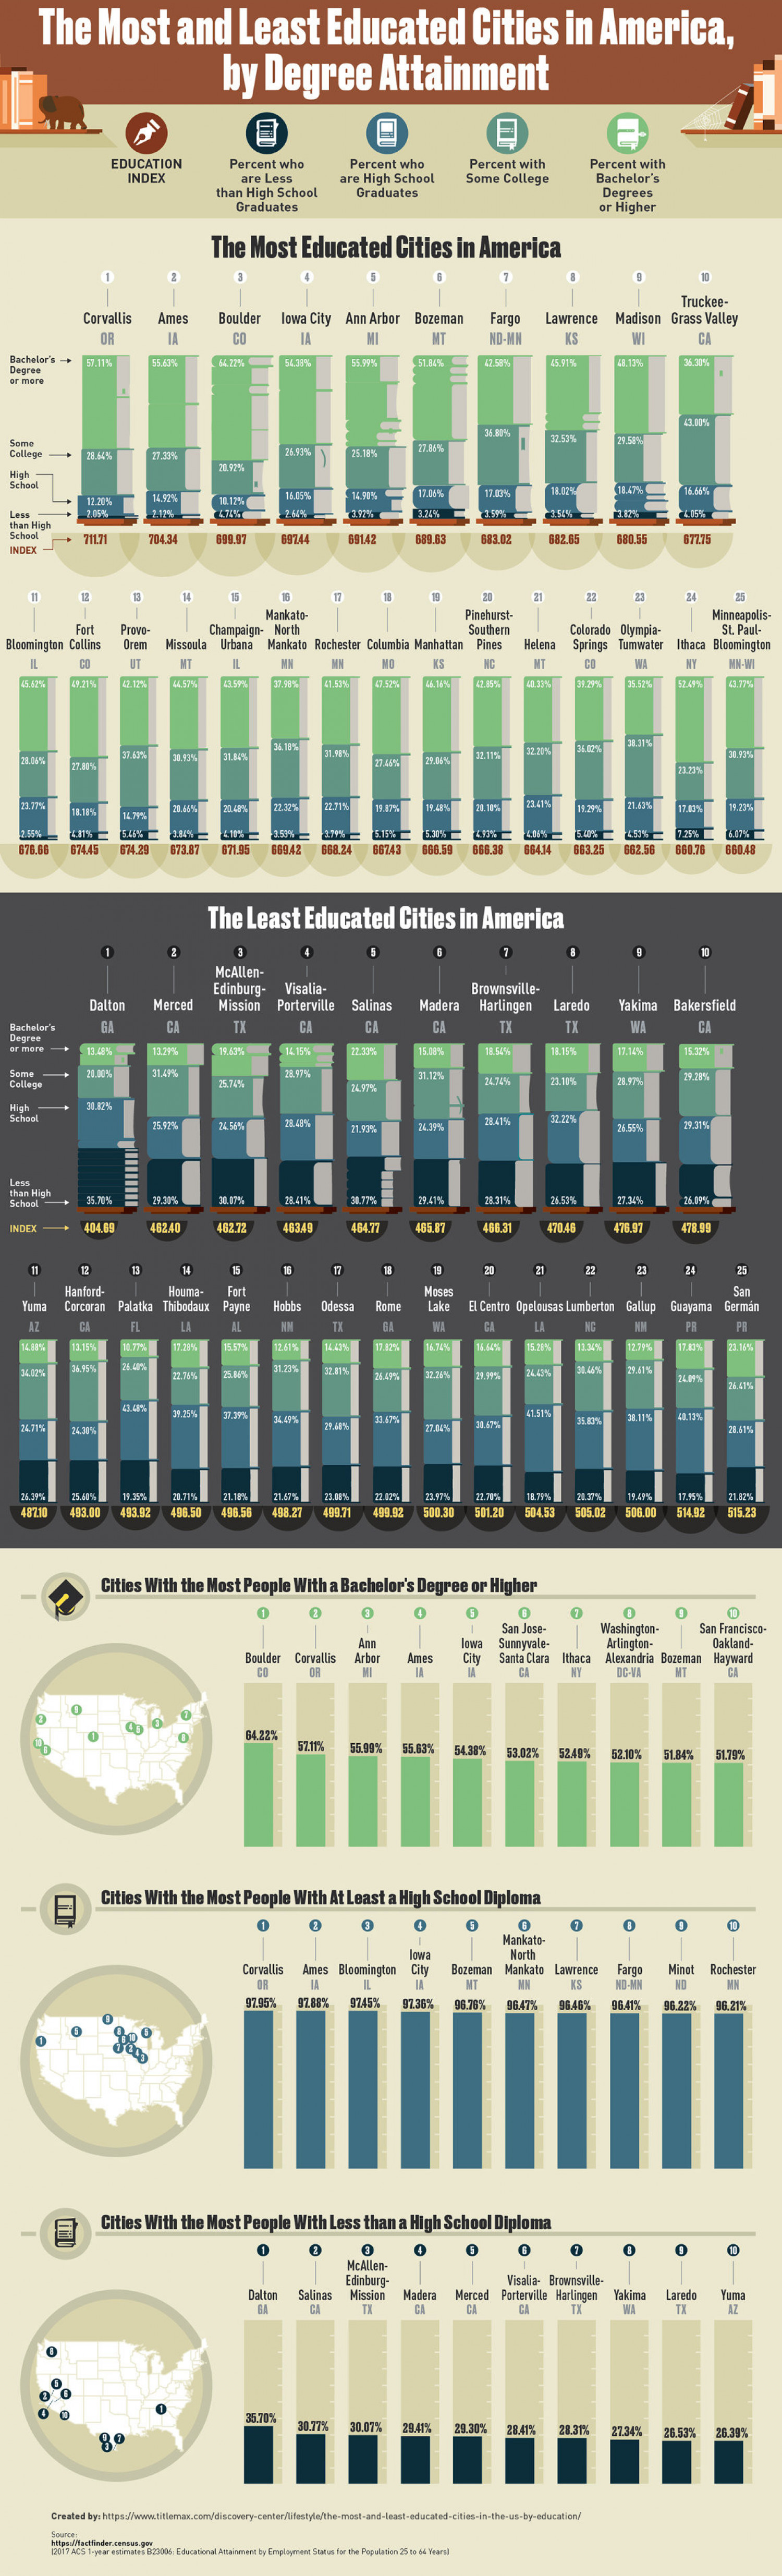 The Most and Least Educated Cities in the United States, by Degree Attainment Infographic